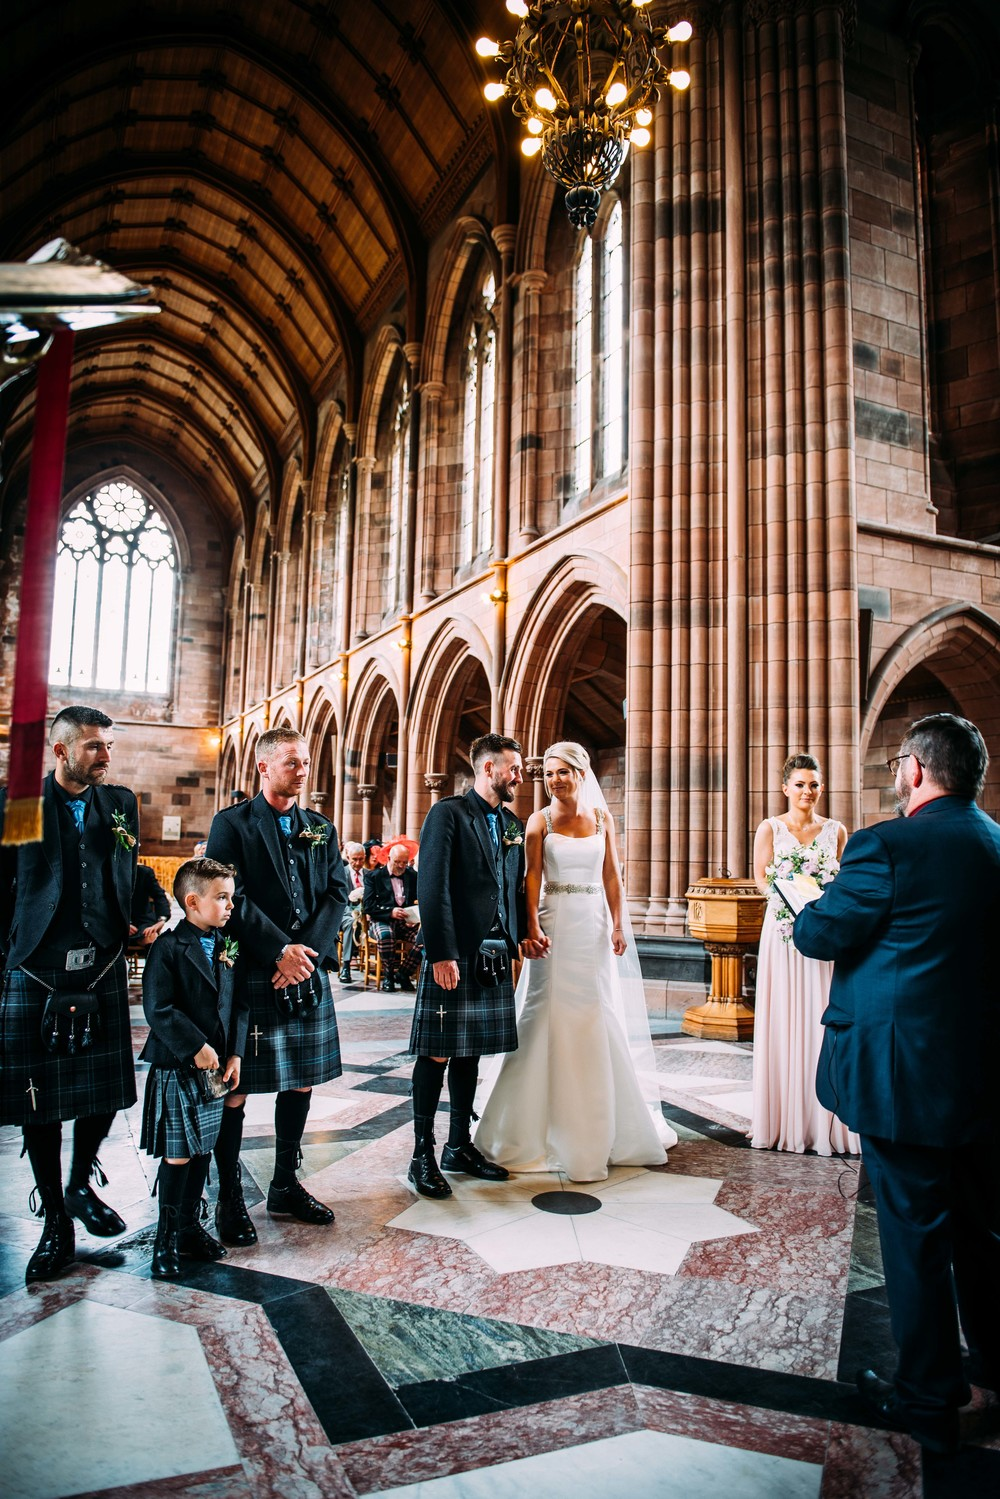 Dumfries-Wedding-Tom-Cairns-Photography-Easterbrook-Hall-Blush-Pink-Wedding-Details 27